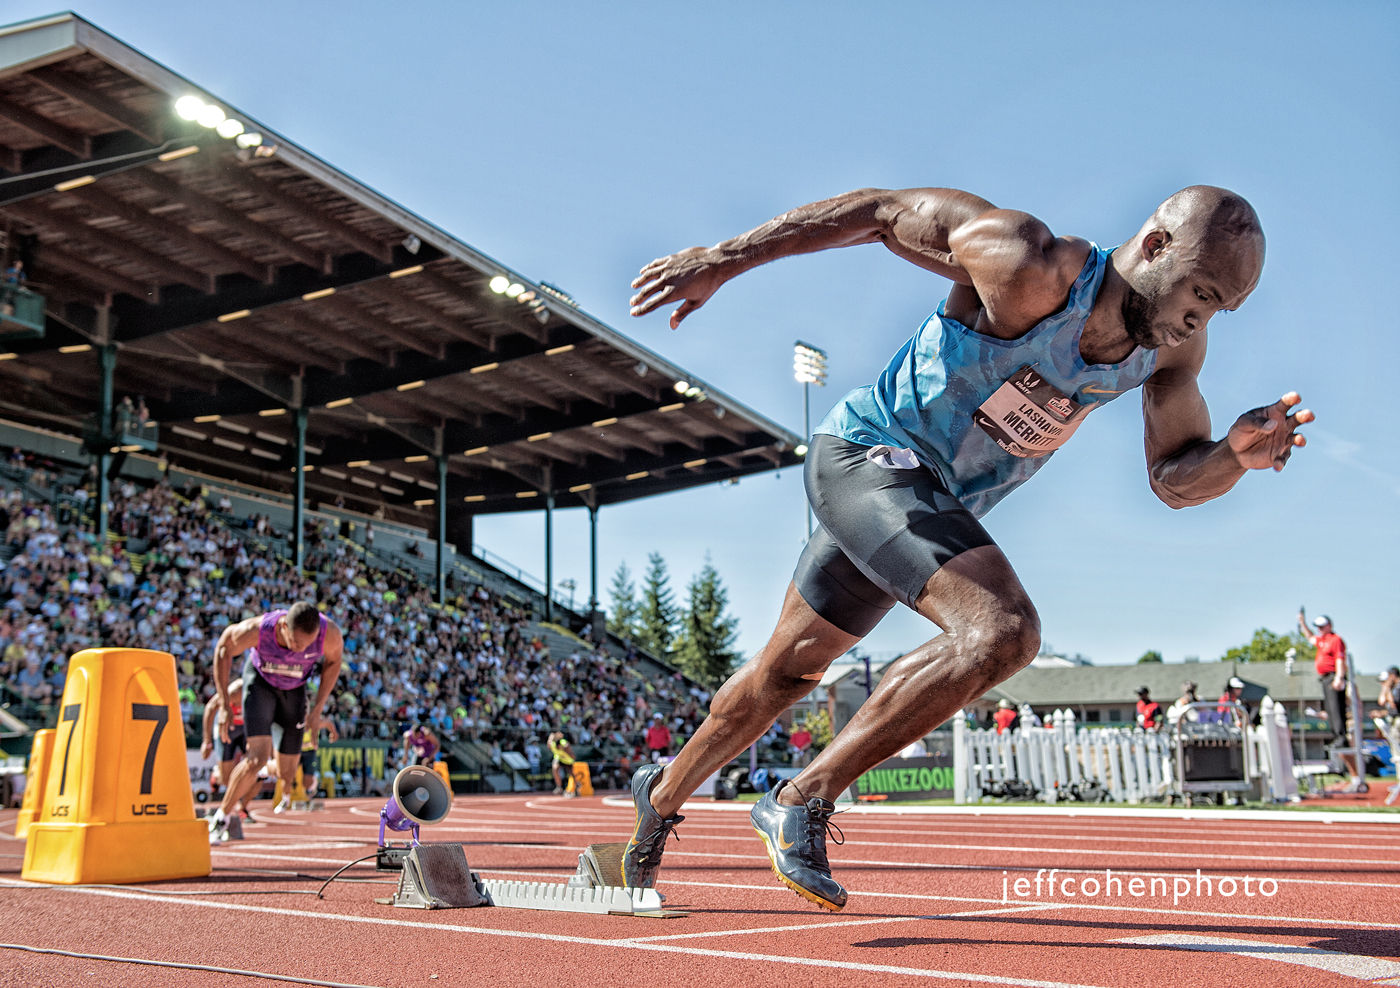 162_1usaoutdoorchamps_2015_merritt_400_heat_jeff_cohen_4317_web.jpg